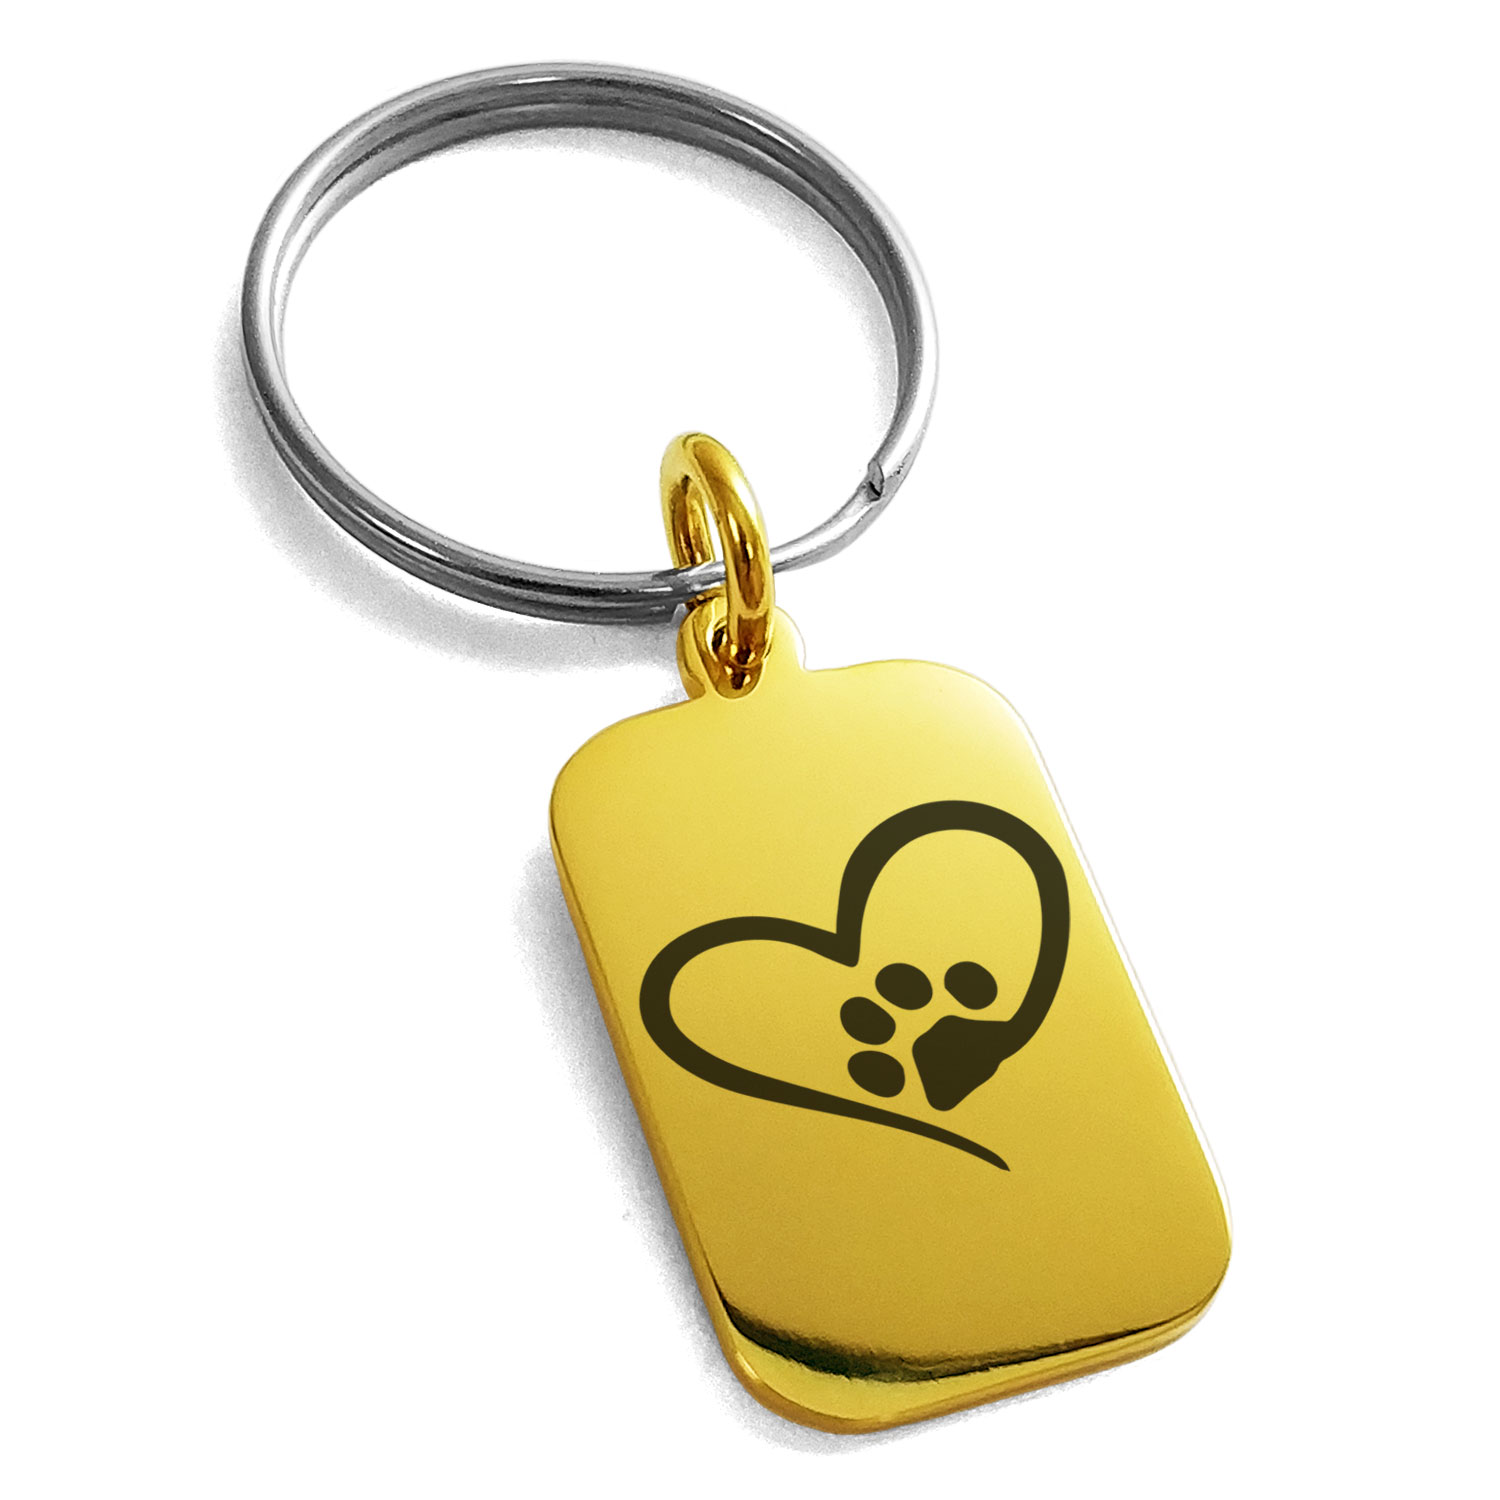 Stainless Steel Dog Paw Heart Engraved Small Rectangle Dog Tag Charm Keychain Keyring